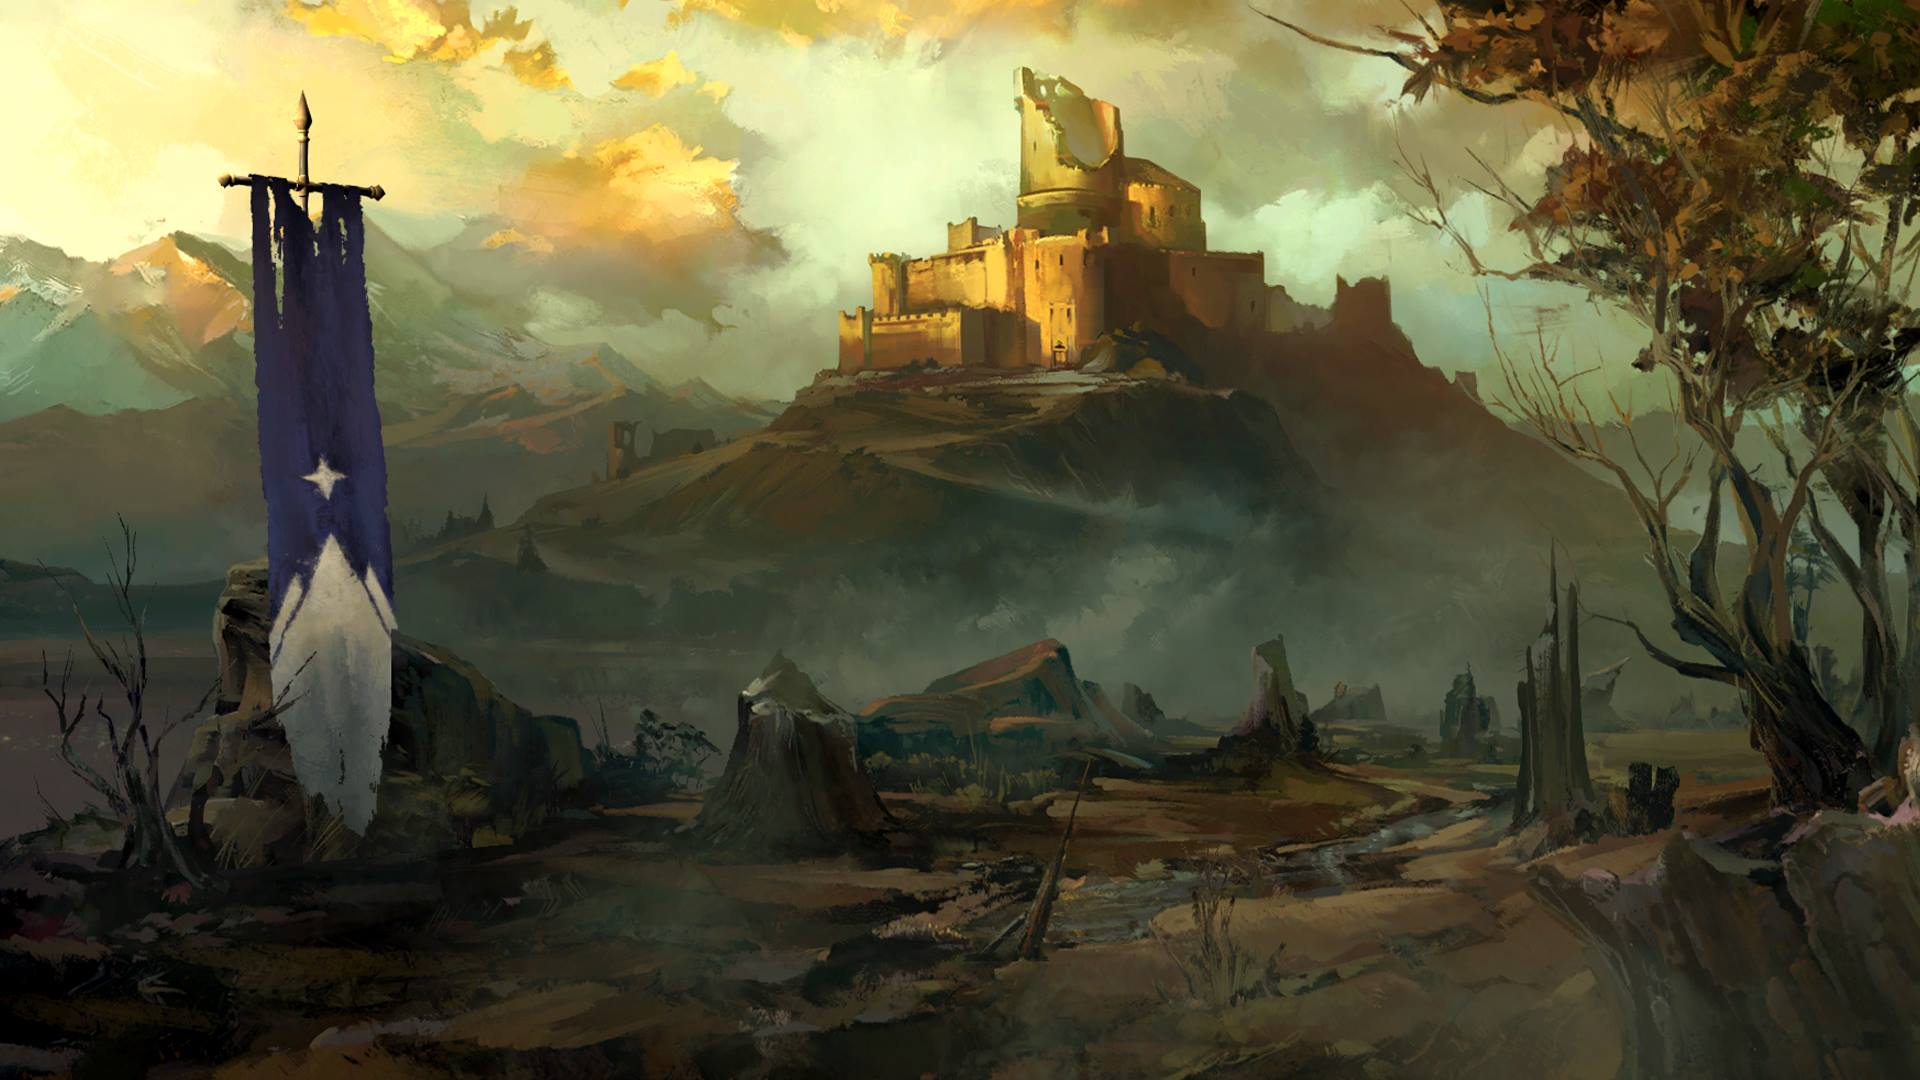 Game of Thrones Episode 4 - Fort